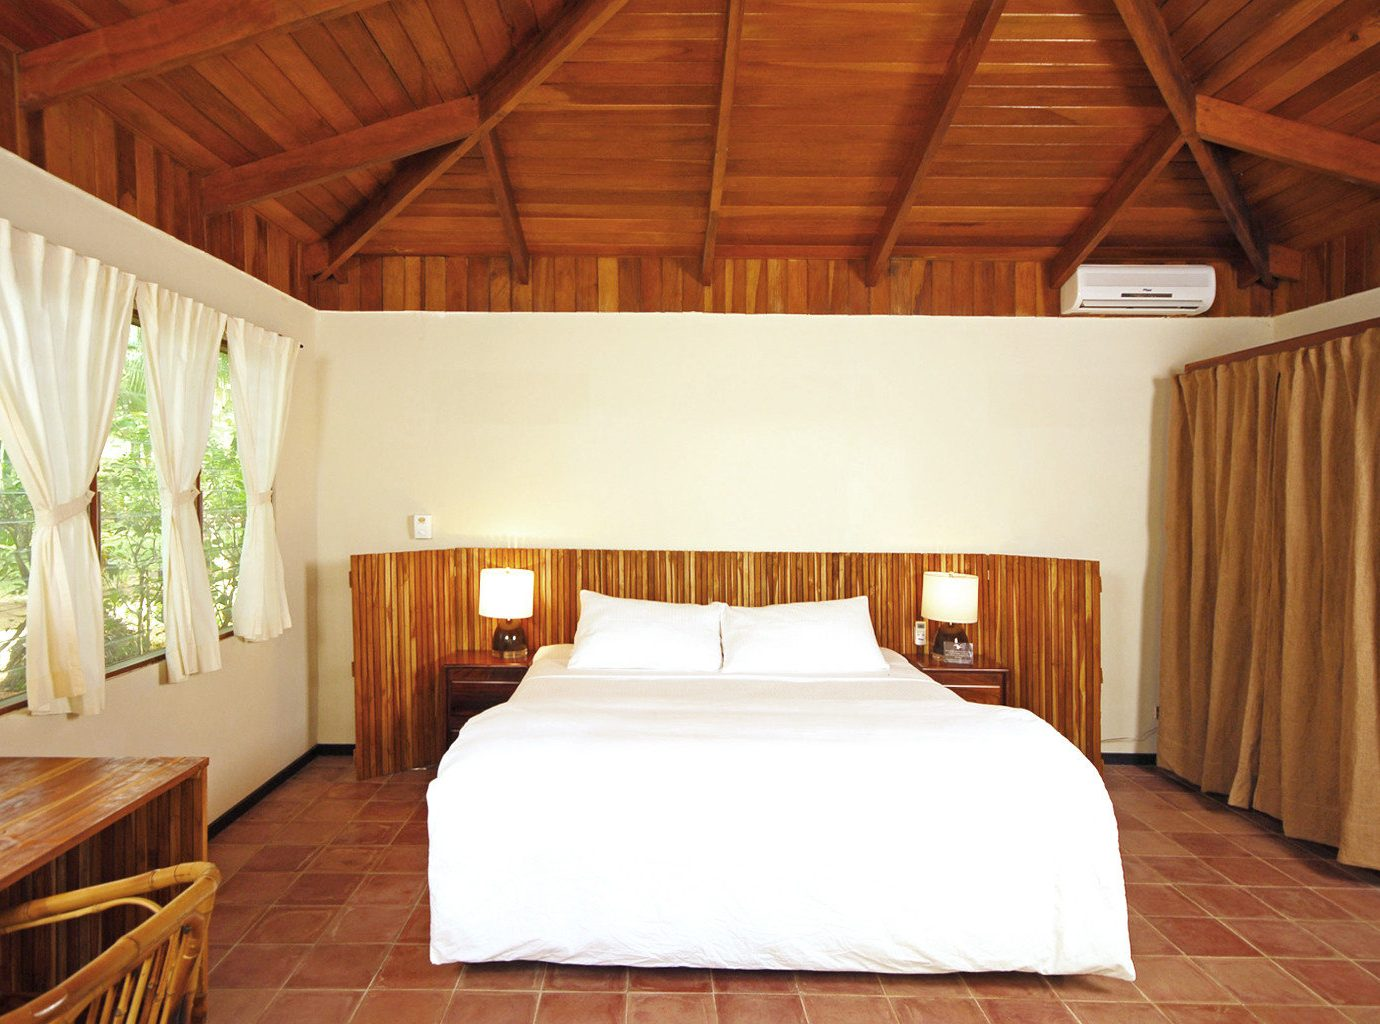 Bedroom at Harmony Hotel in Costa RIca